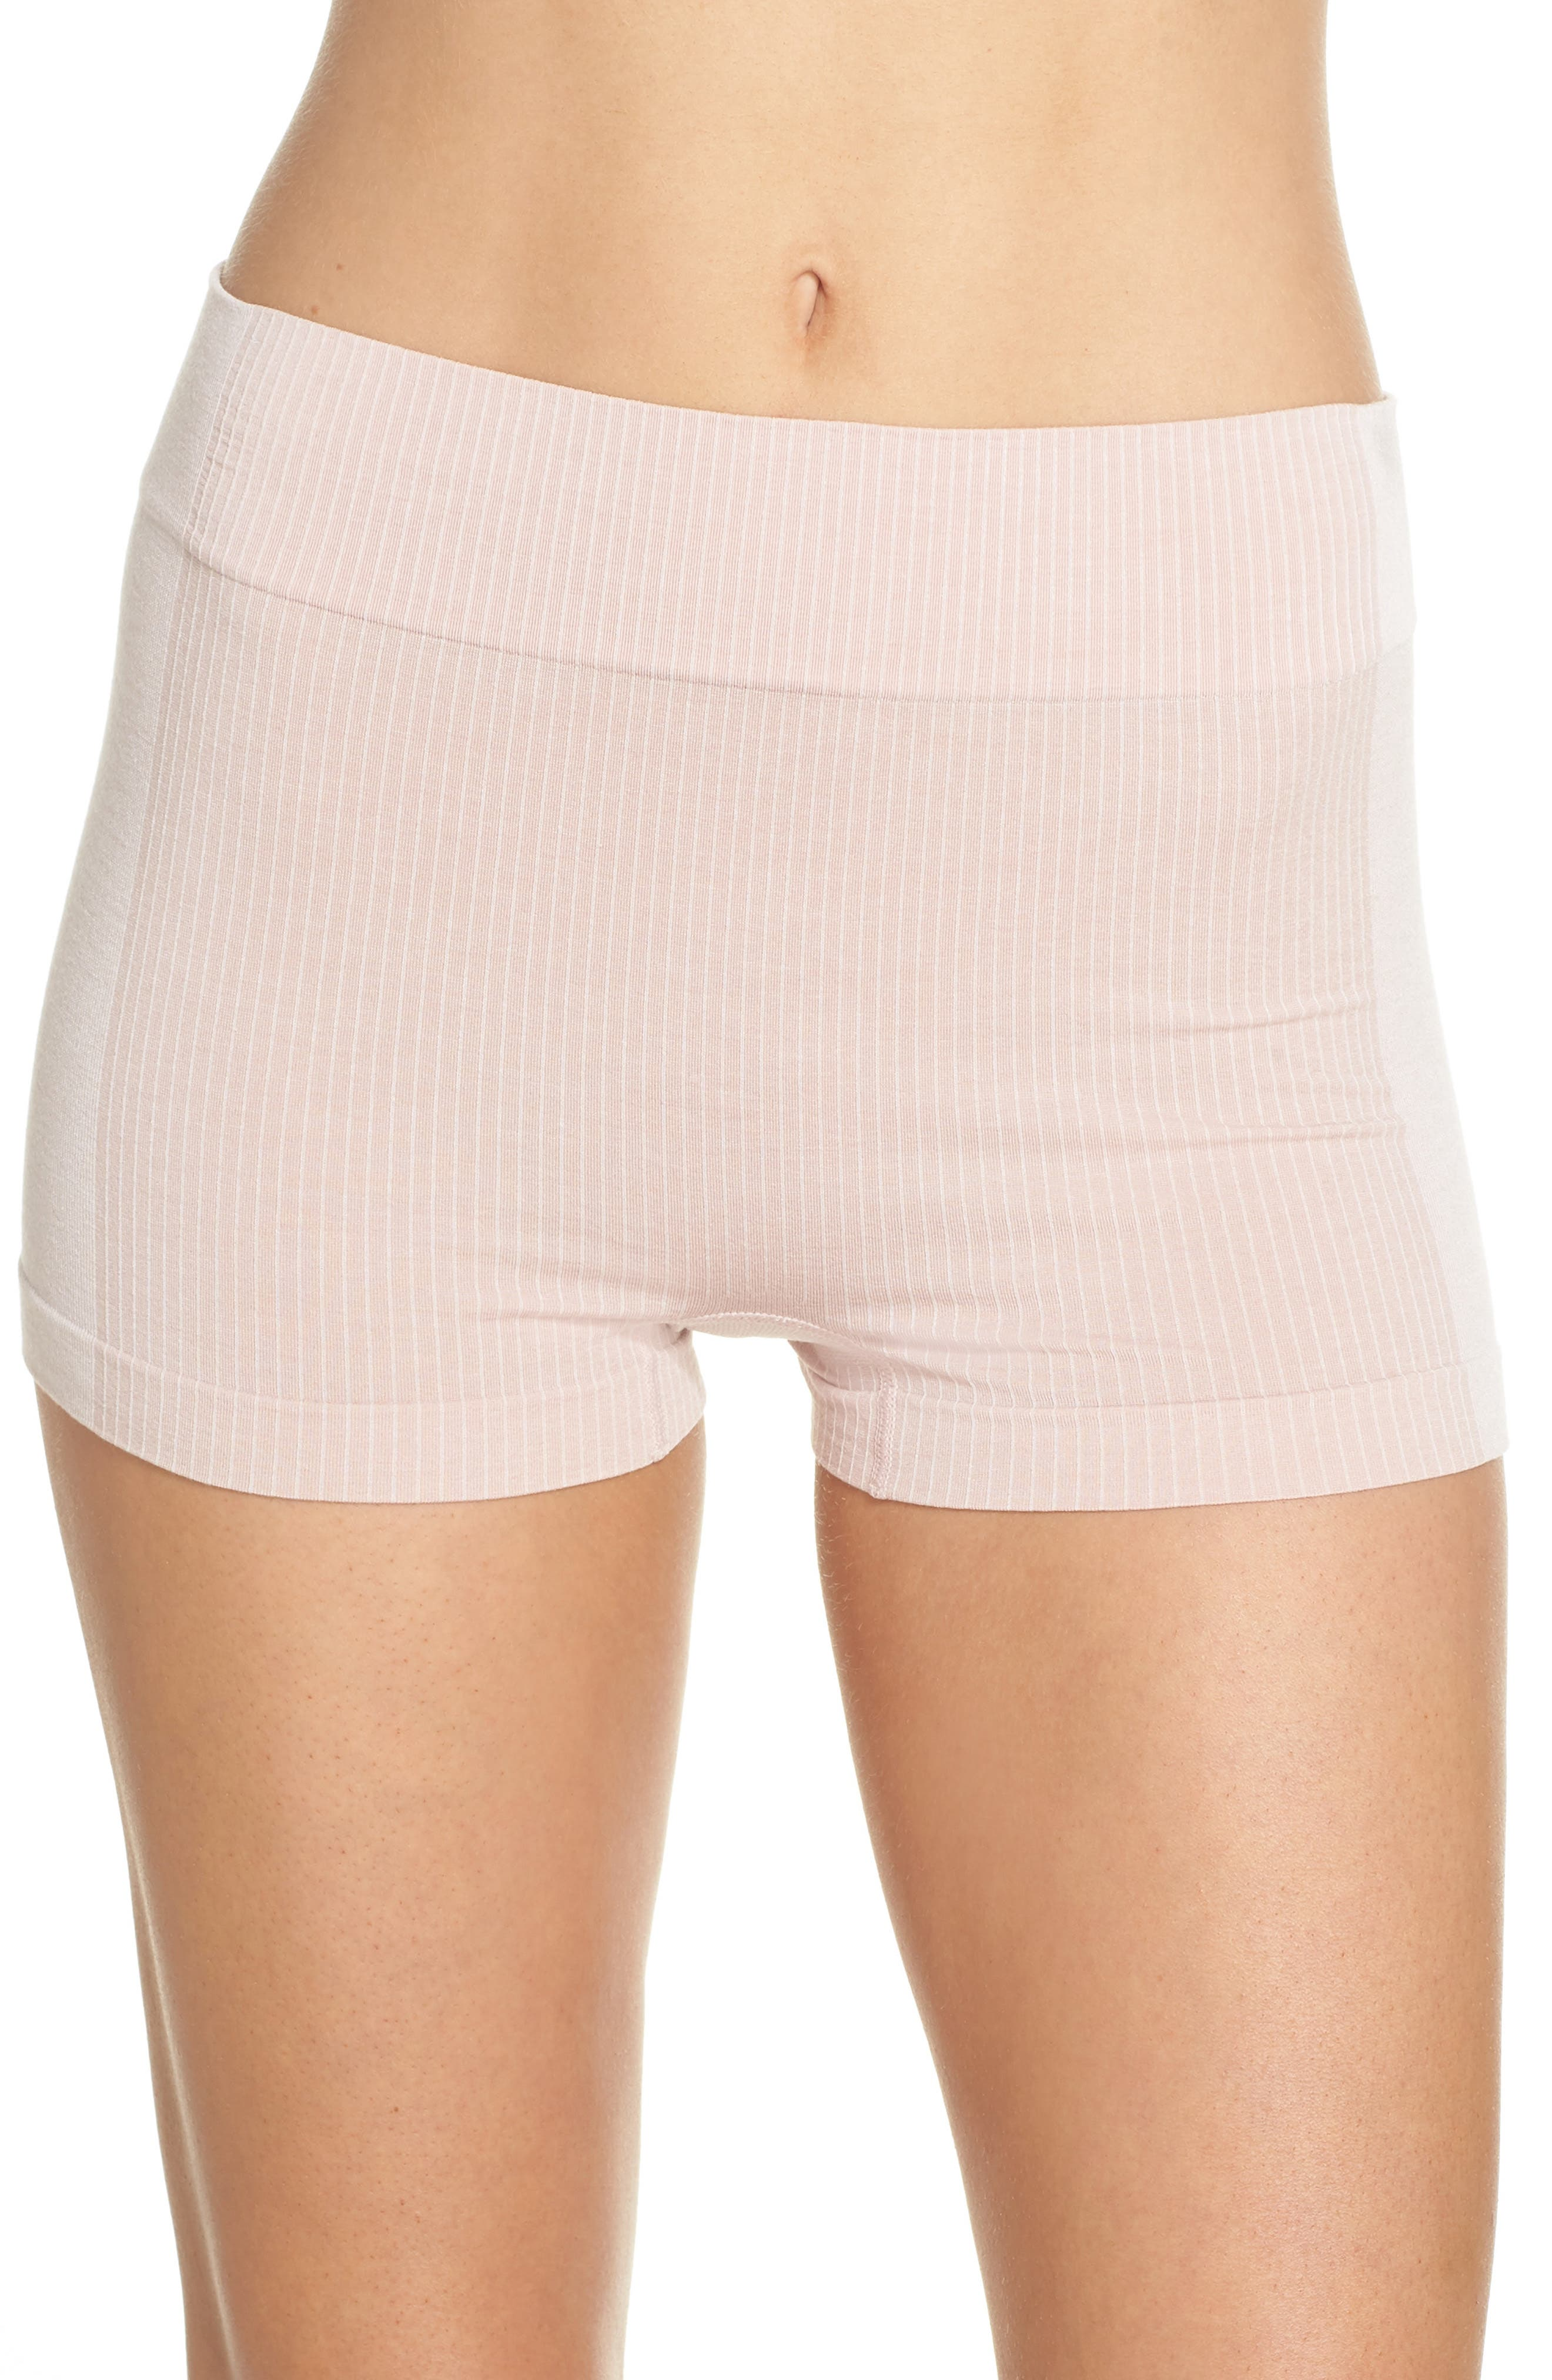 Laidback Layers Seamless Boyshorts by Spanx